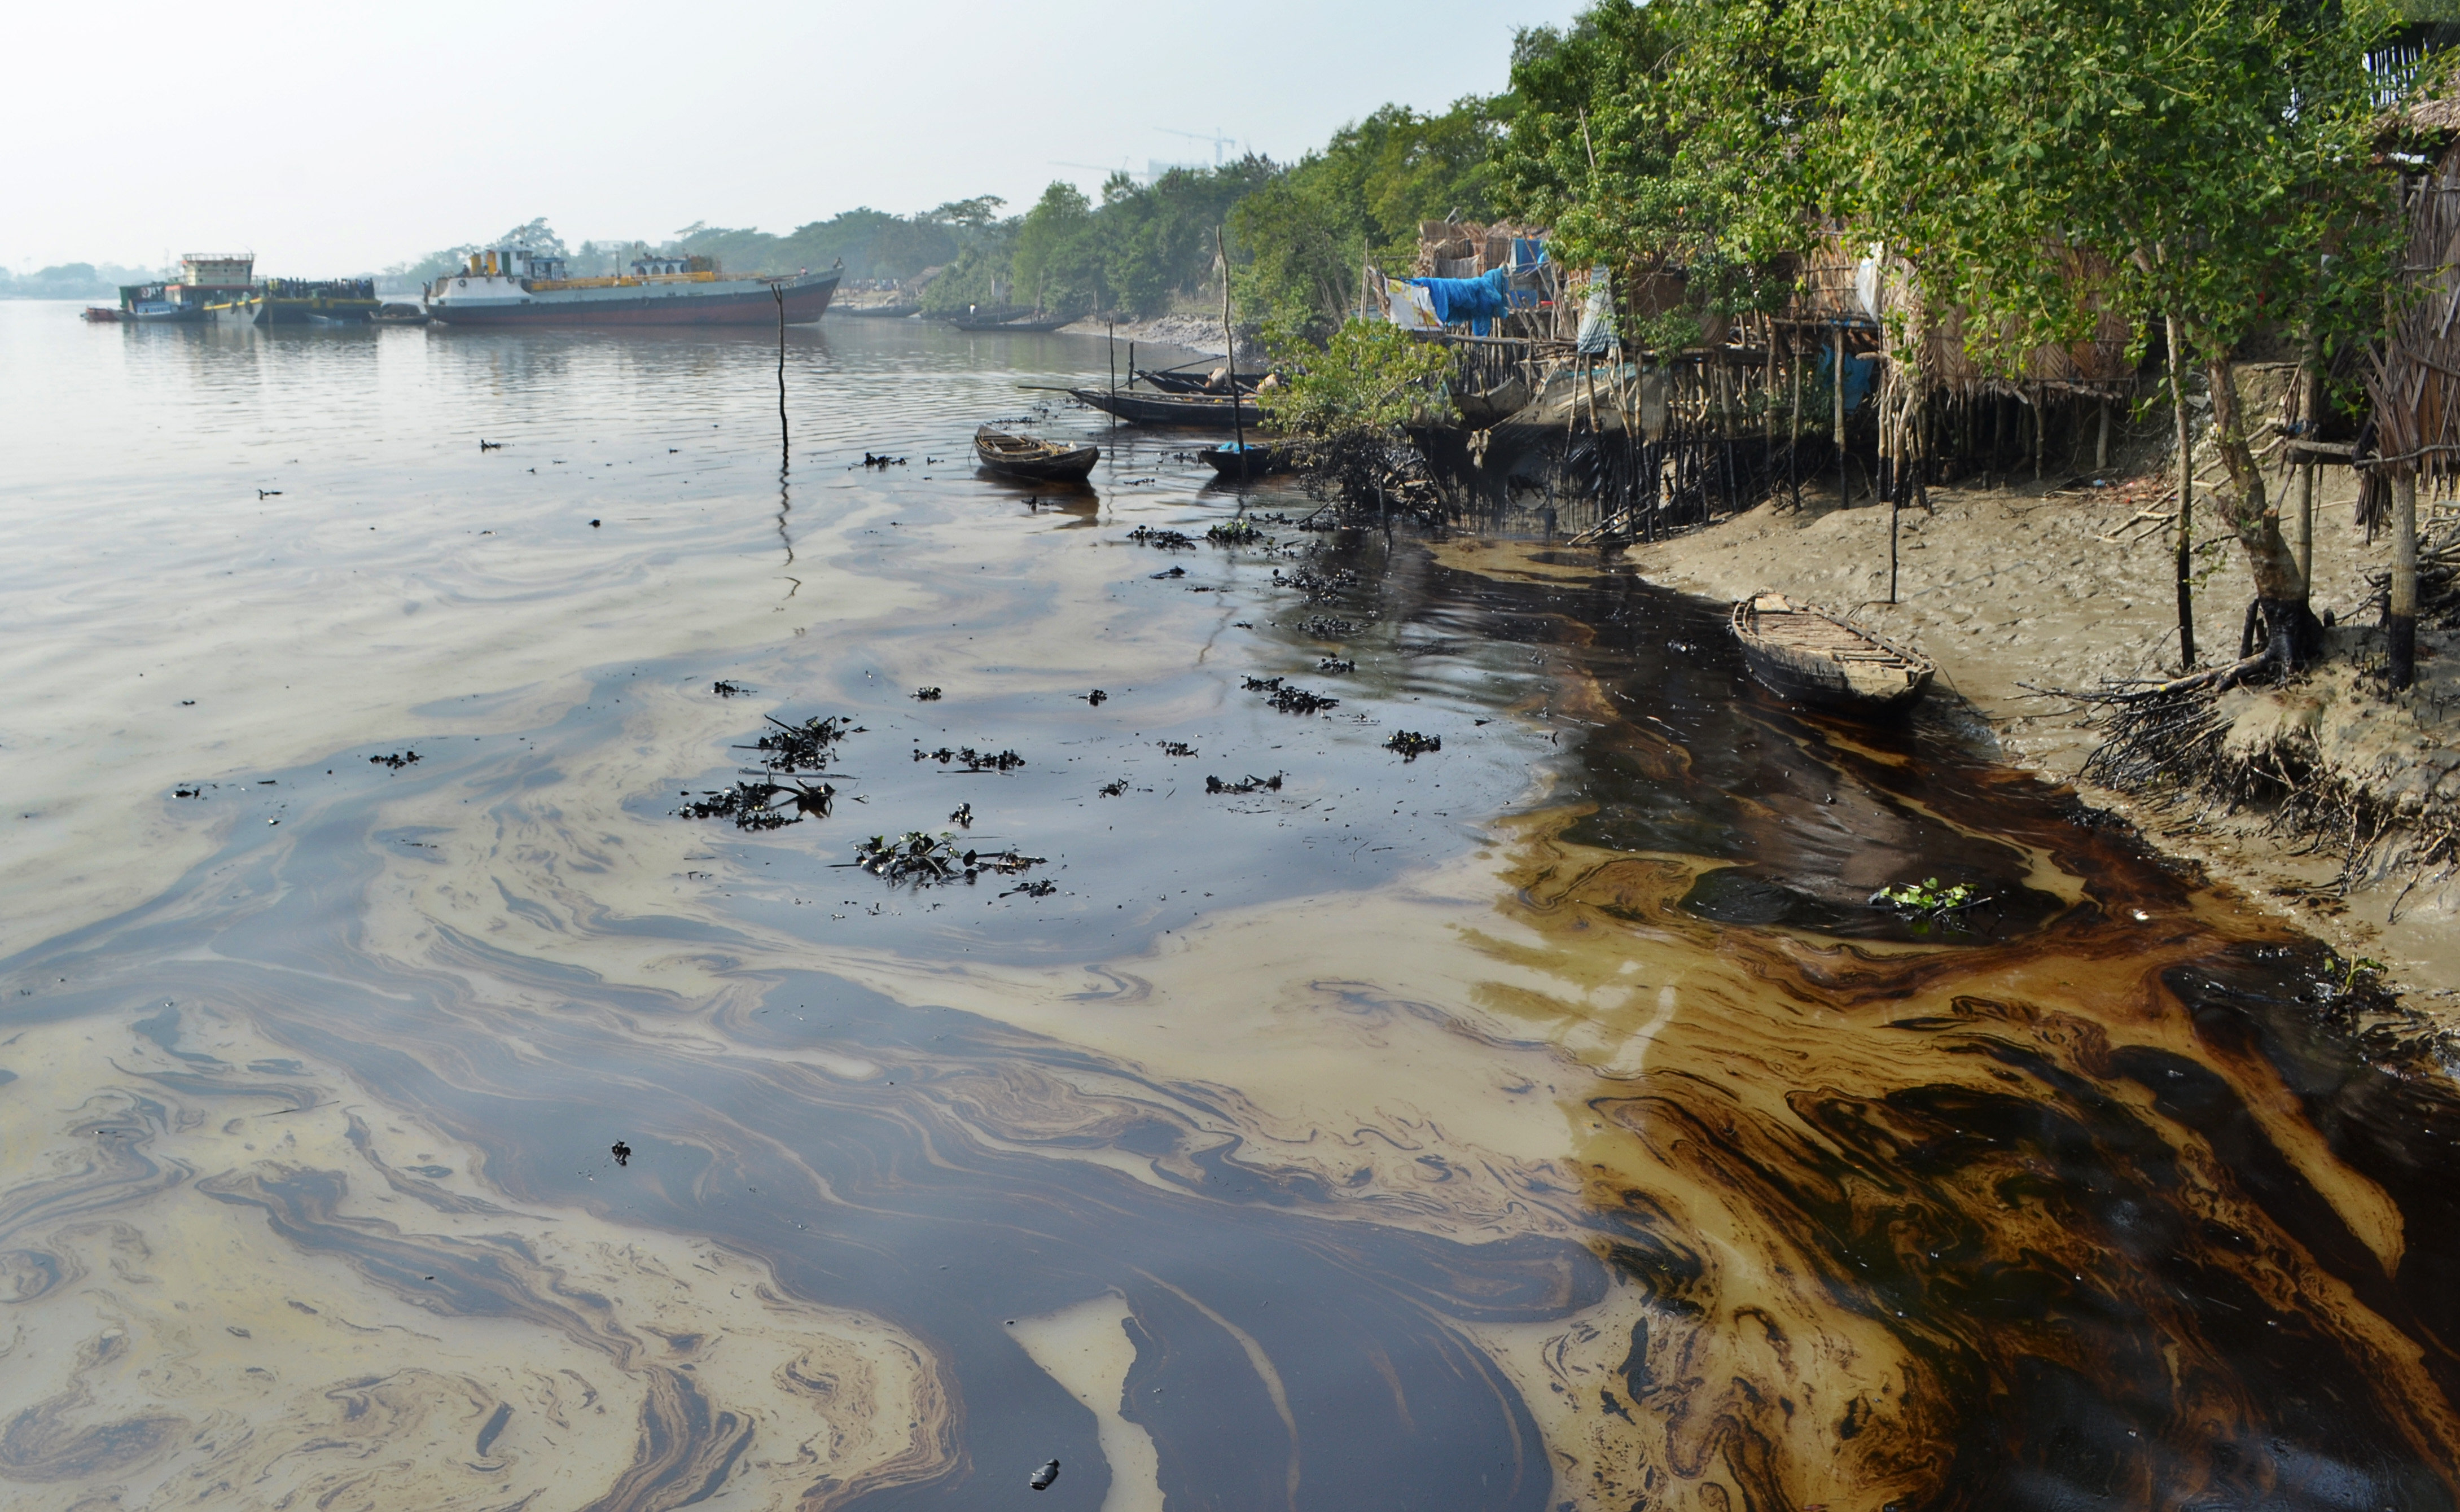 water pollution in trinidad and tobago environmental sciences essay Trinidad and tobago has crucial environmental issues which need to be addressed now  water pollution is affecting the sea around us that contamination is affecting the fishing industry, the safety of the seafood we eat, and marine ecosystems which are crucial to many species  pollution puts nation's health at stake tweet steven.